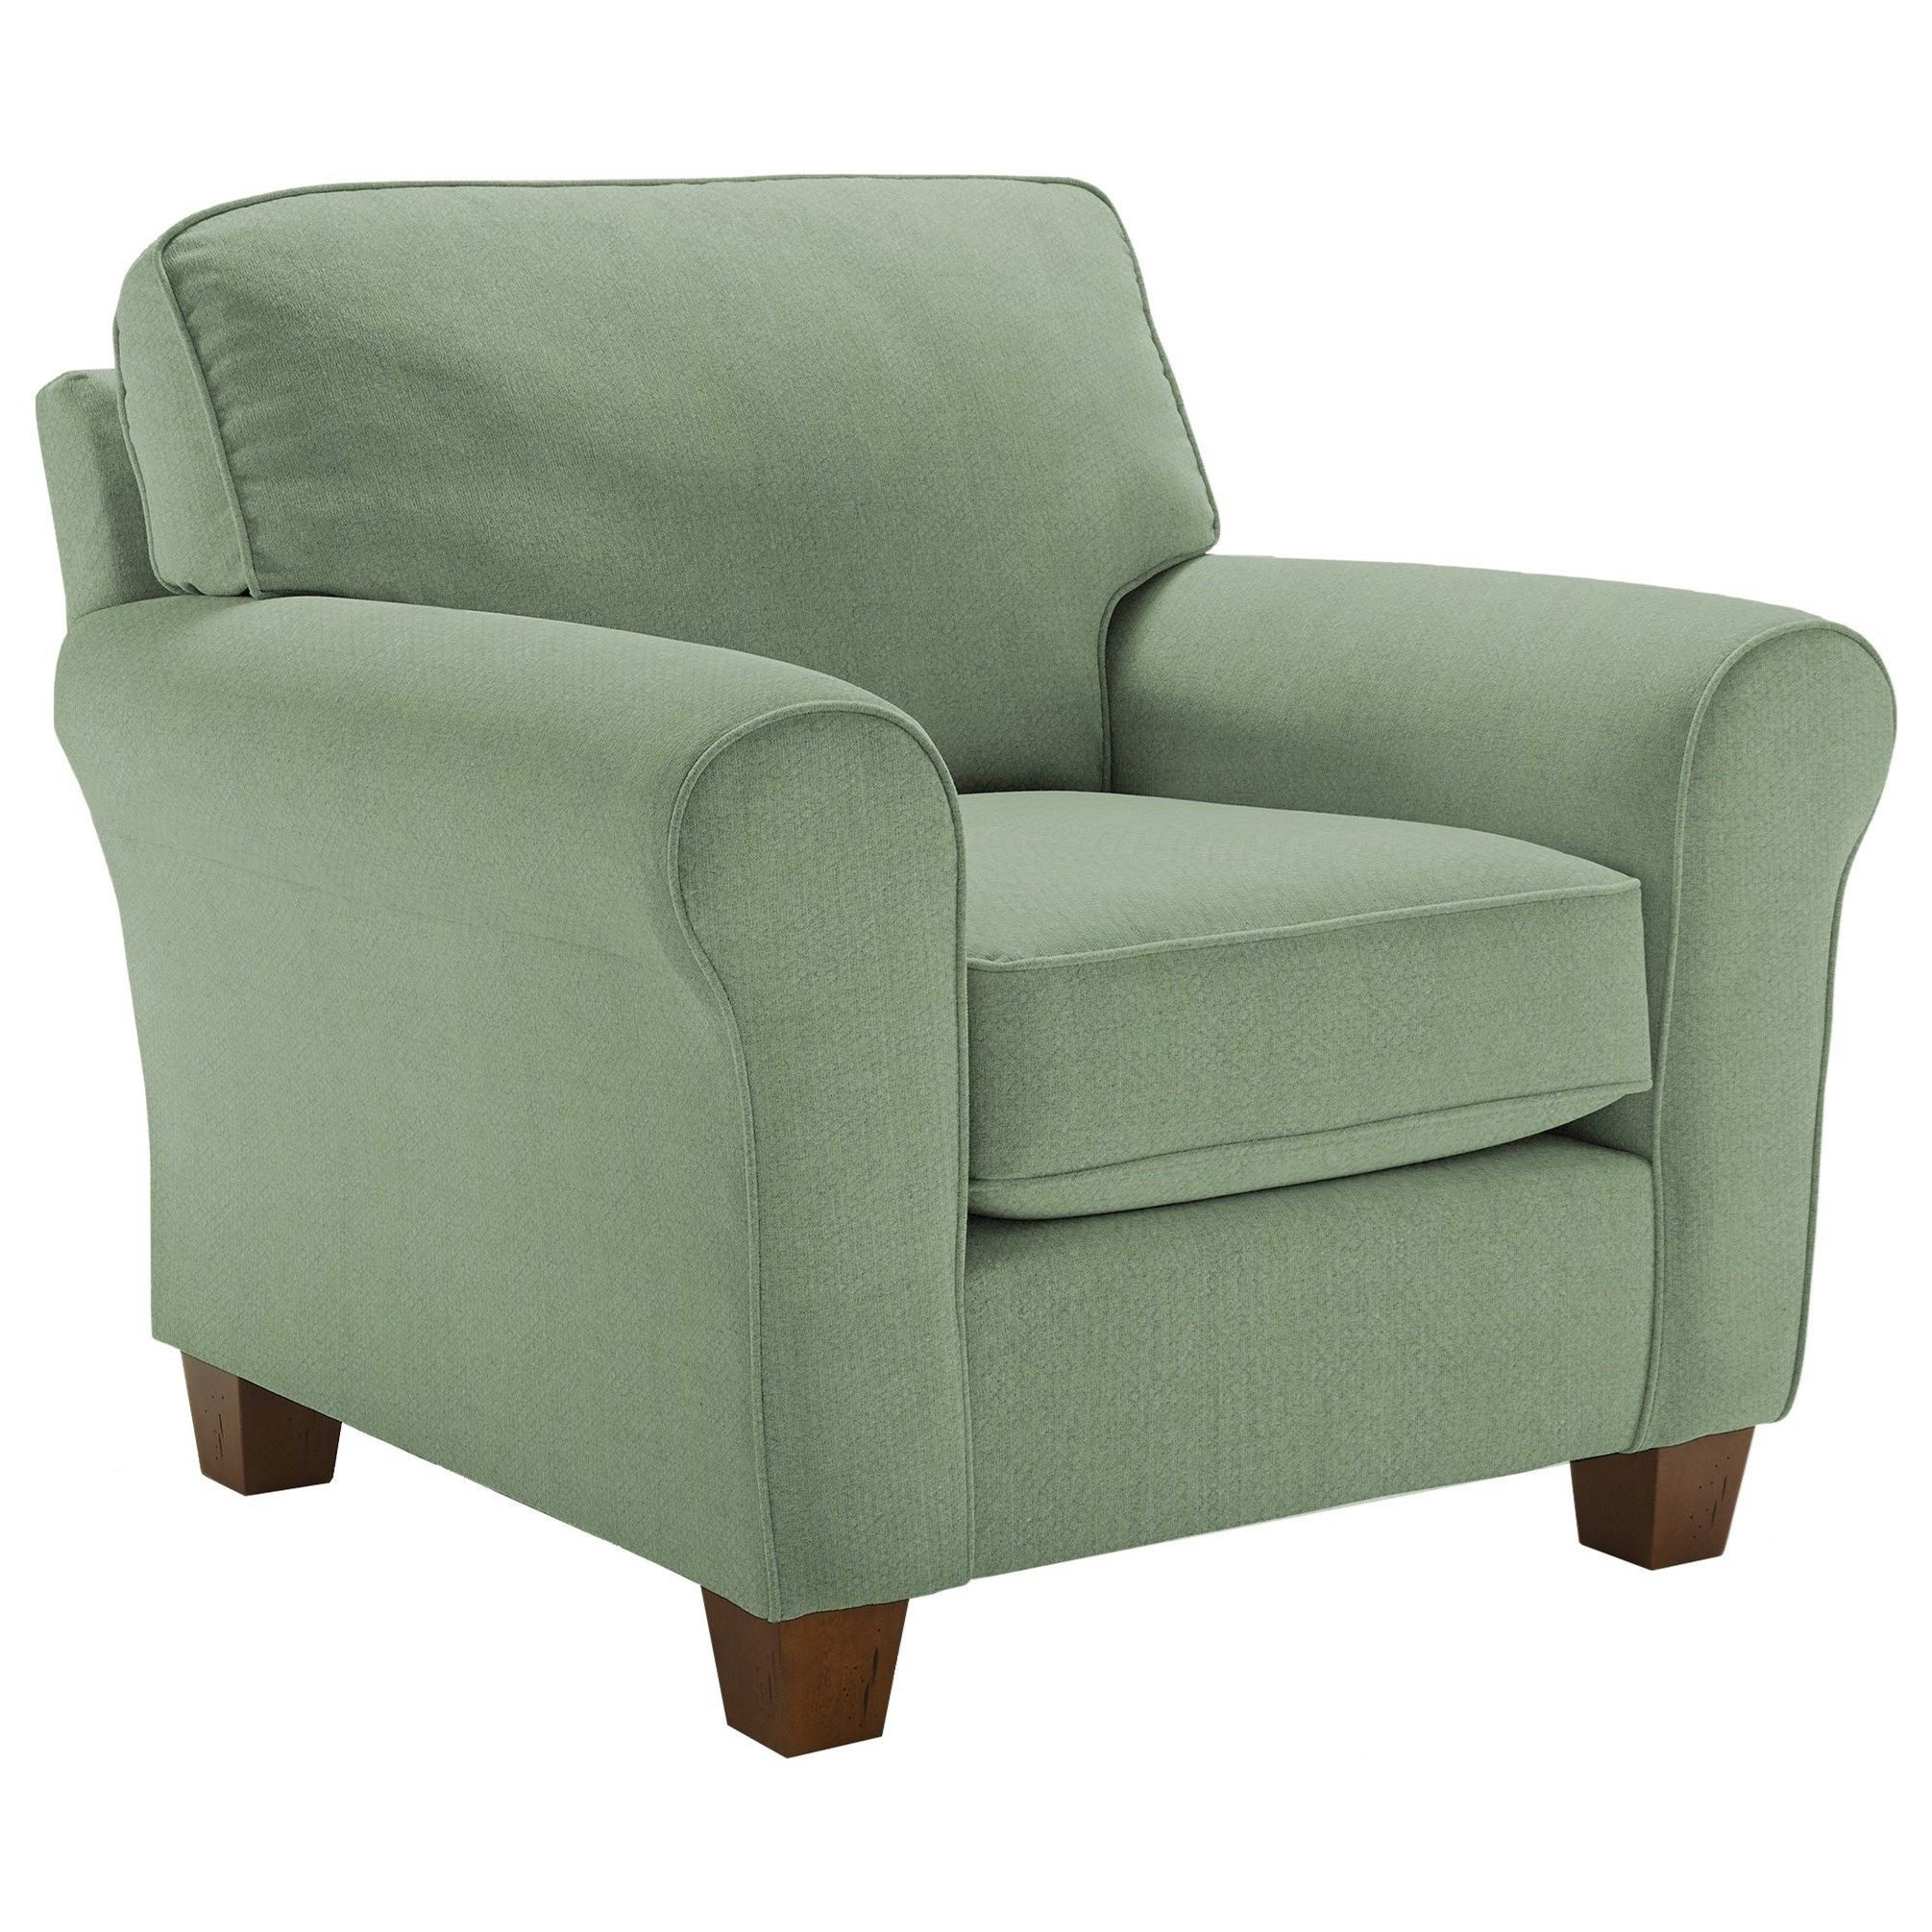 Annabel  Custom Chair by Best Home Furnishings at VanDrie Home Furnishings